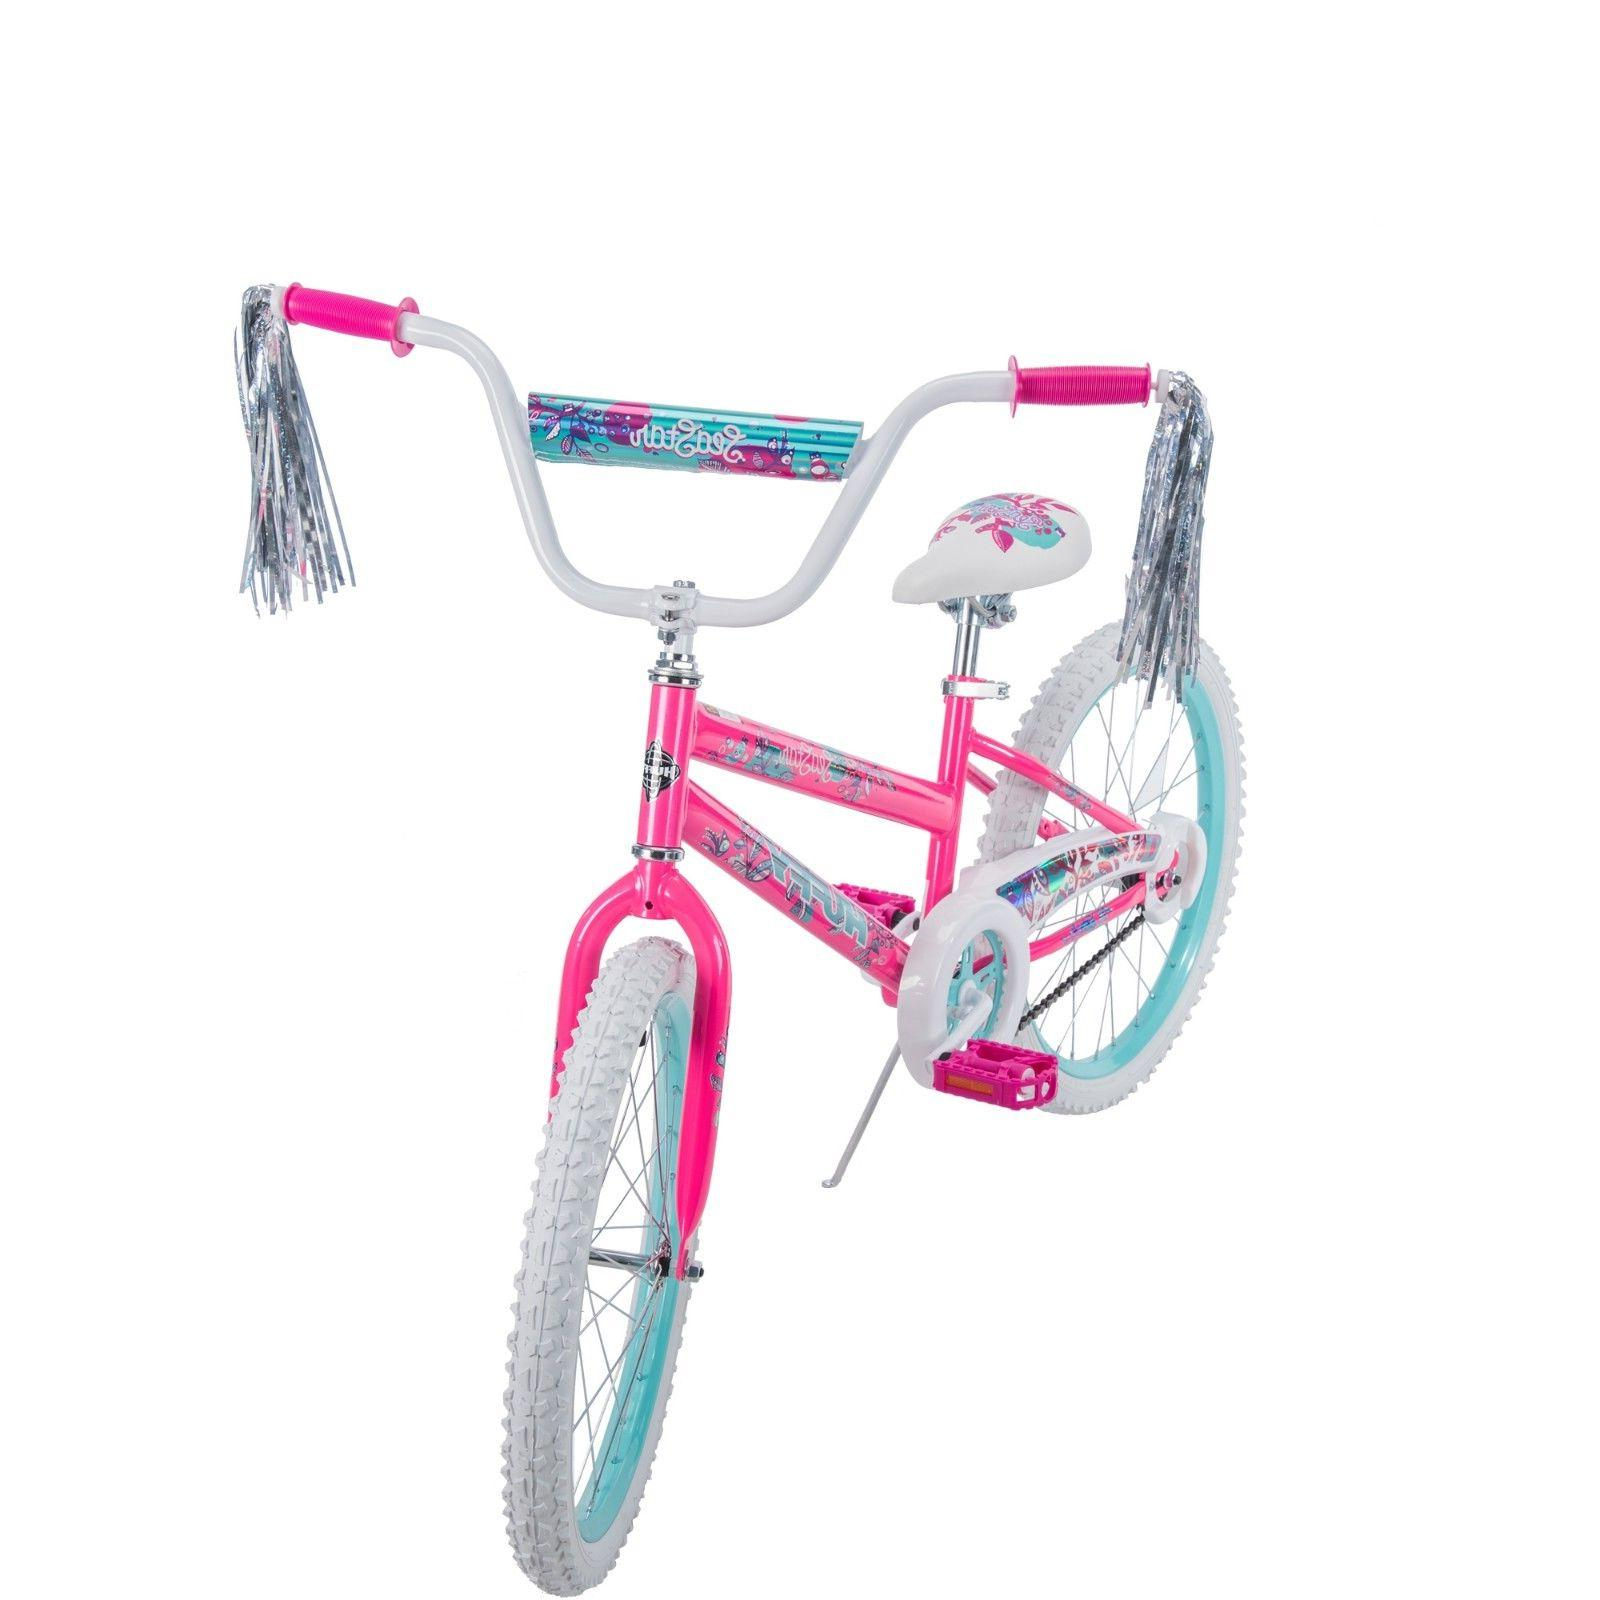 Bicycle Inch Bike Outdoor Riding